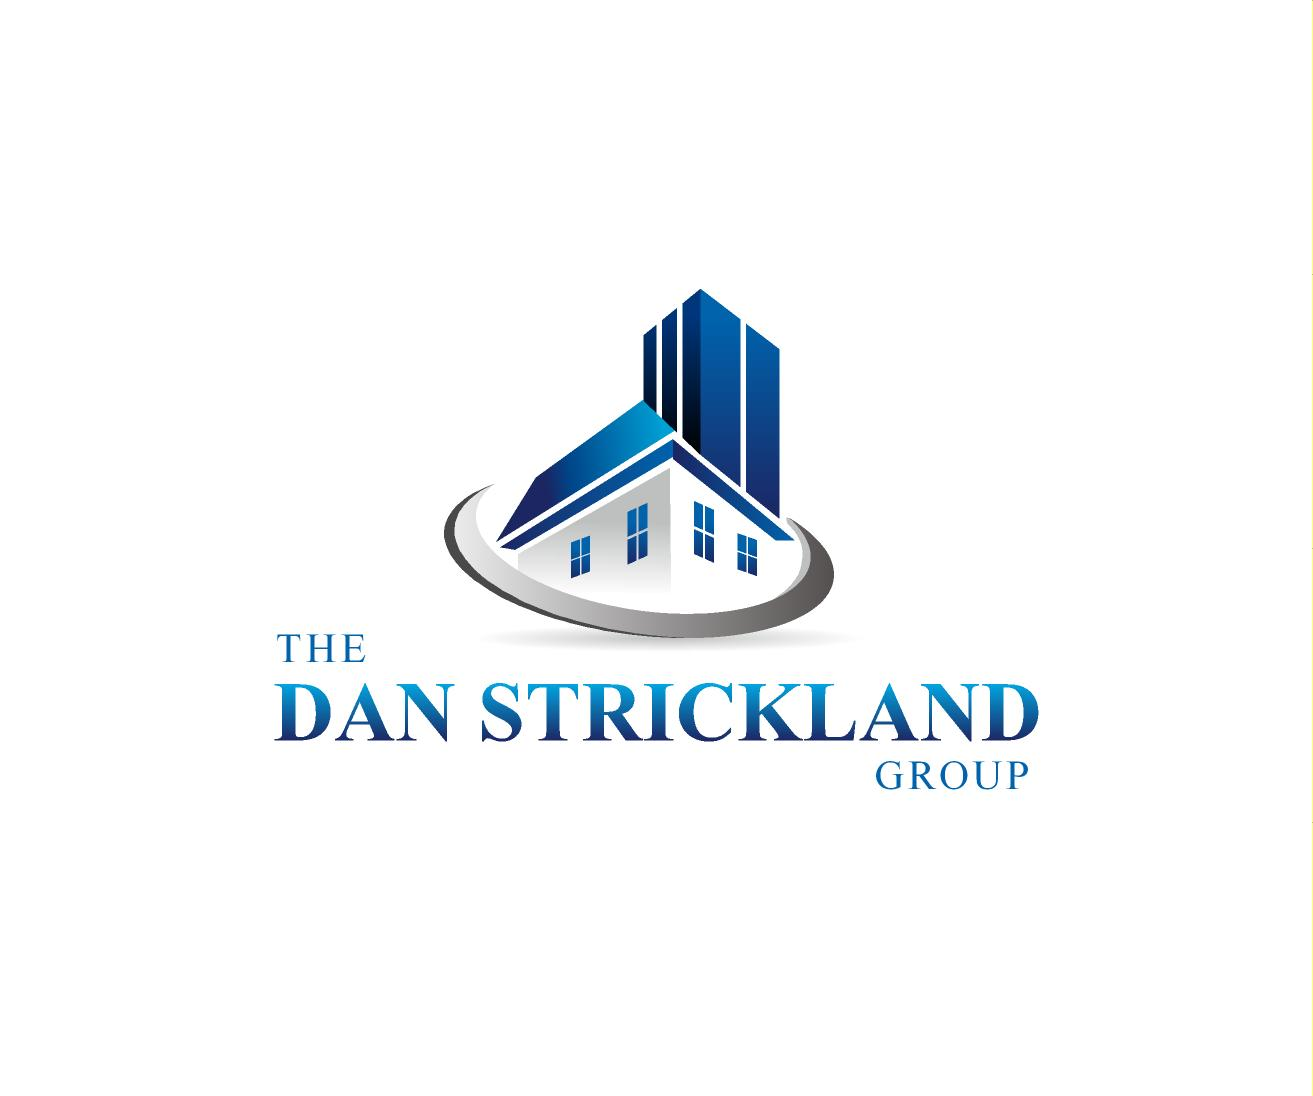 Logo Design by ZAYYADI AHMAD - Entry No. 374 in the Logo Design Contest Creative Logo Design for The Dan Strickland Group.